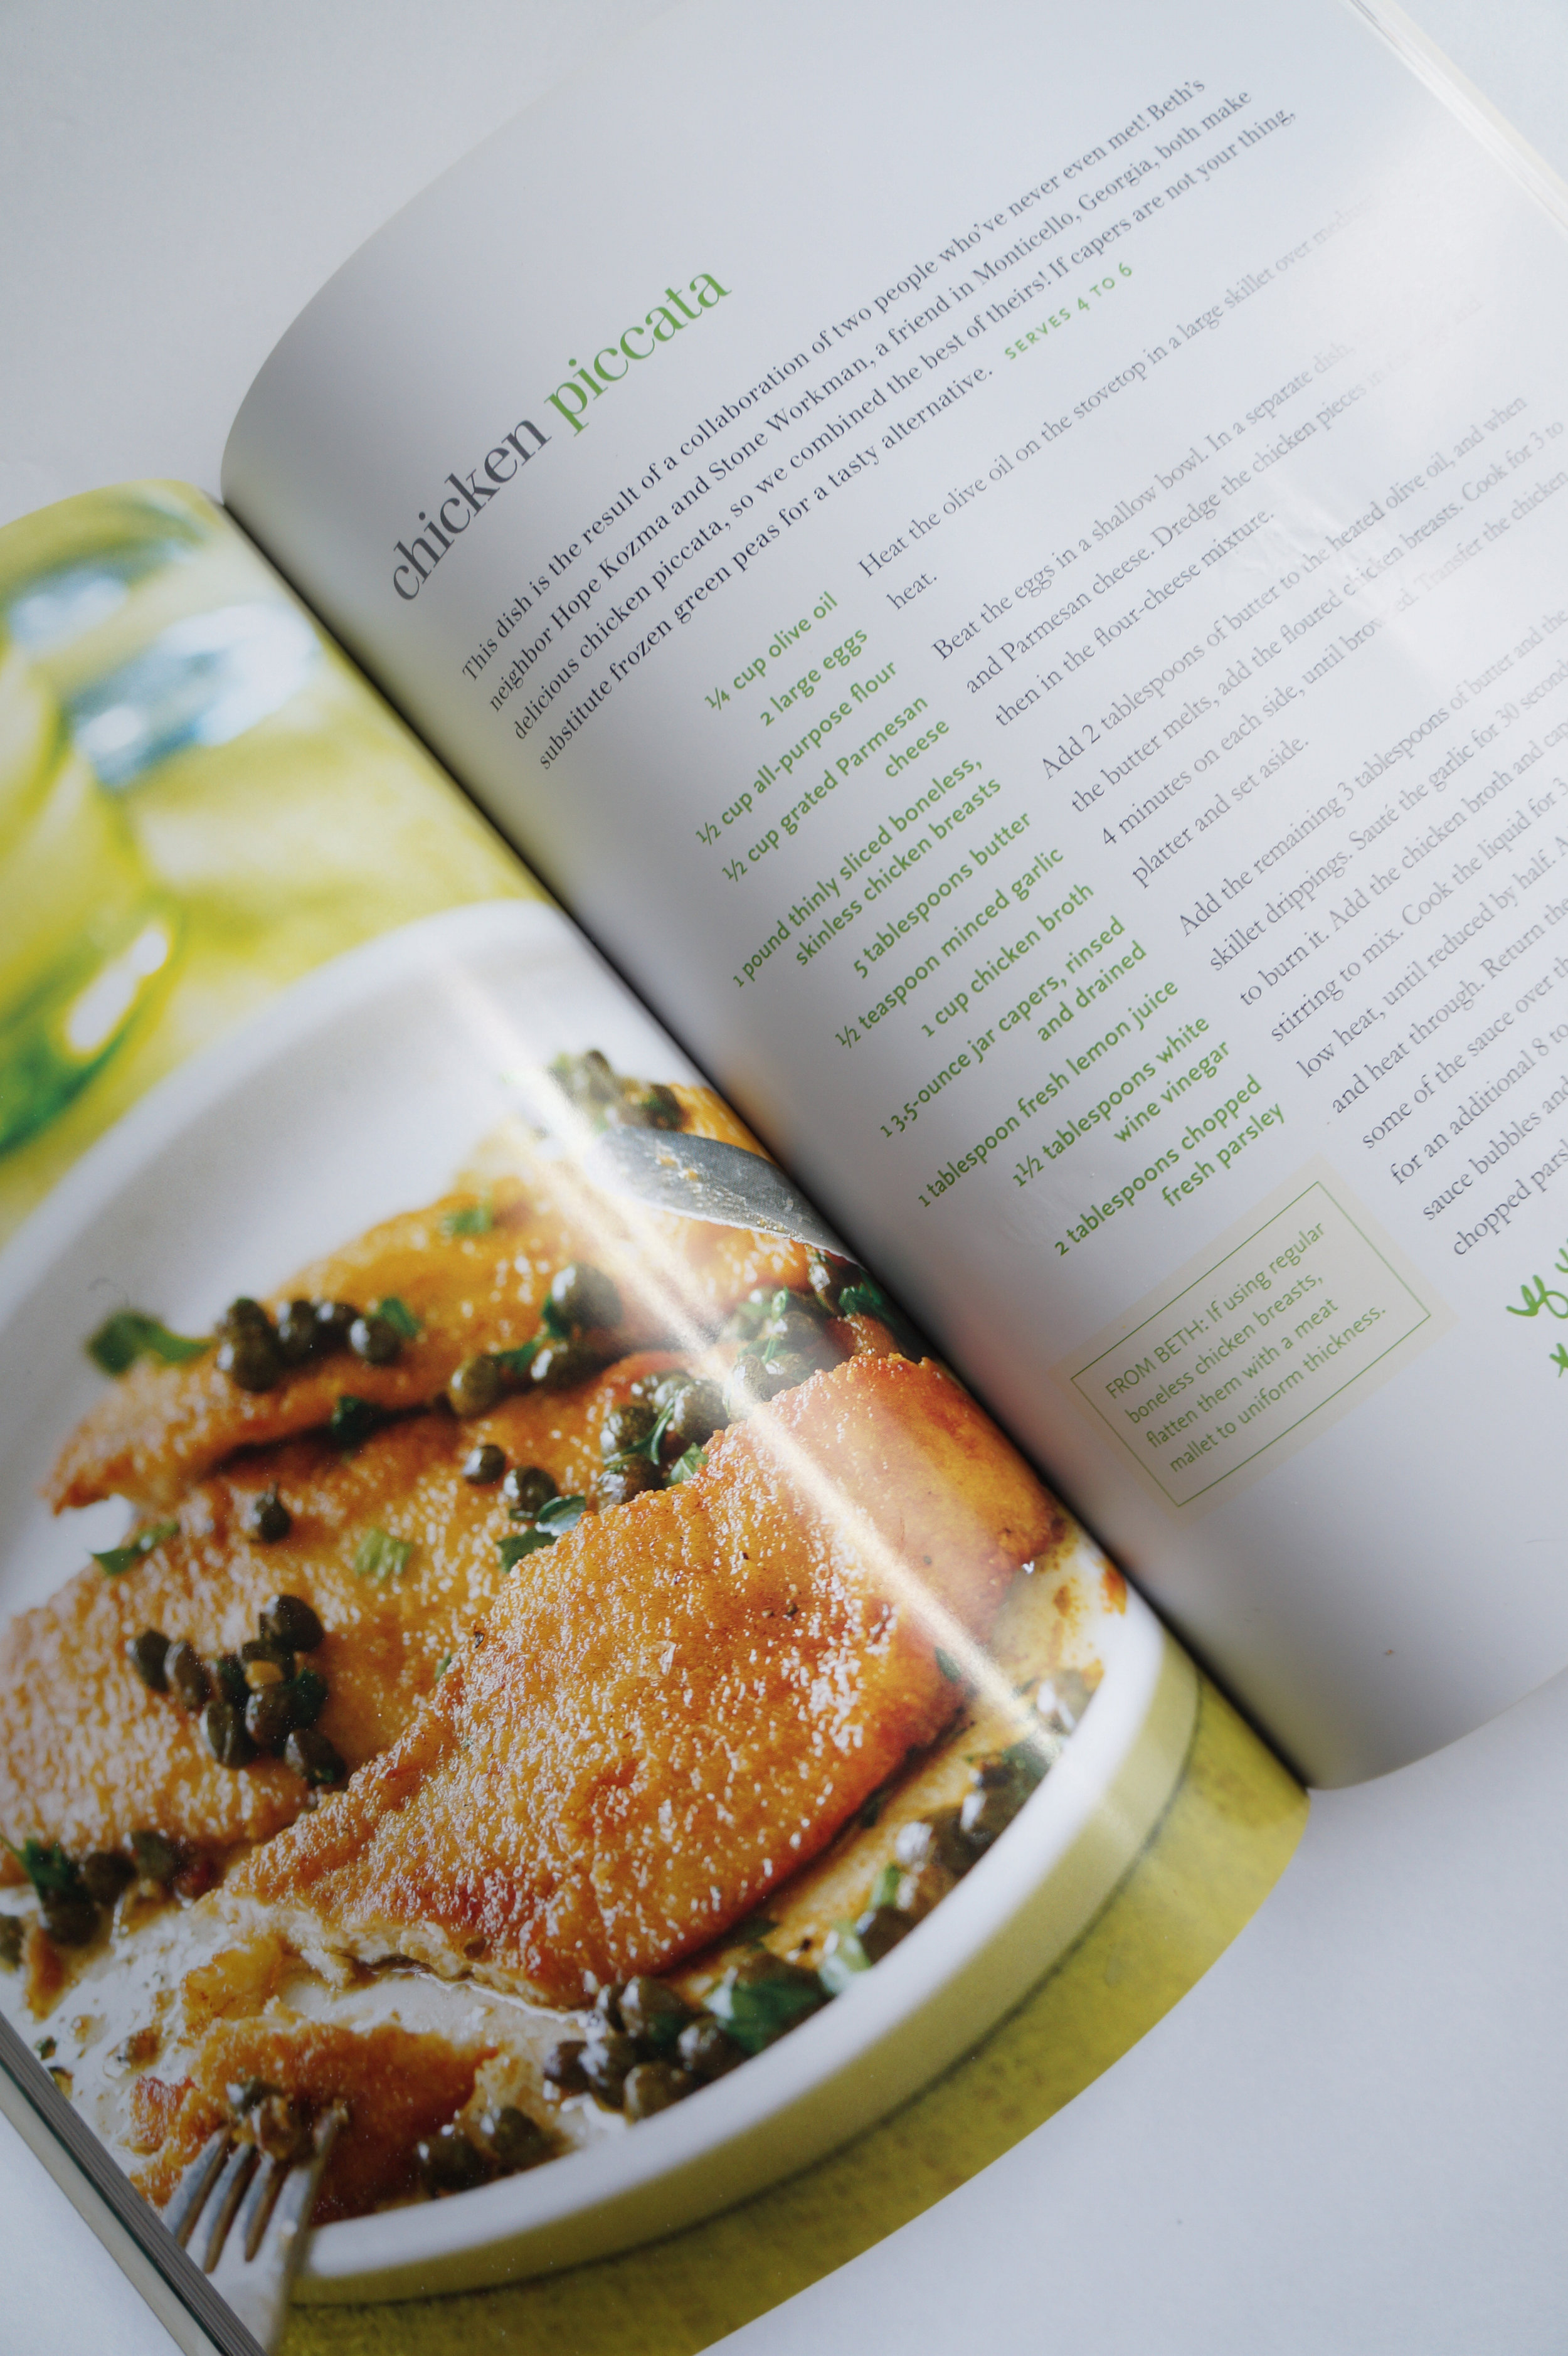 Andrea Fenise Memphis Fashion Blogger and Memphis Food Blogger shares a cookbook review of Trisha Yearwood's Cookbook